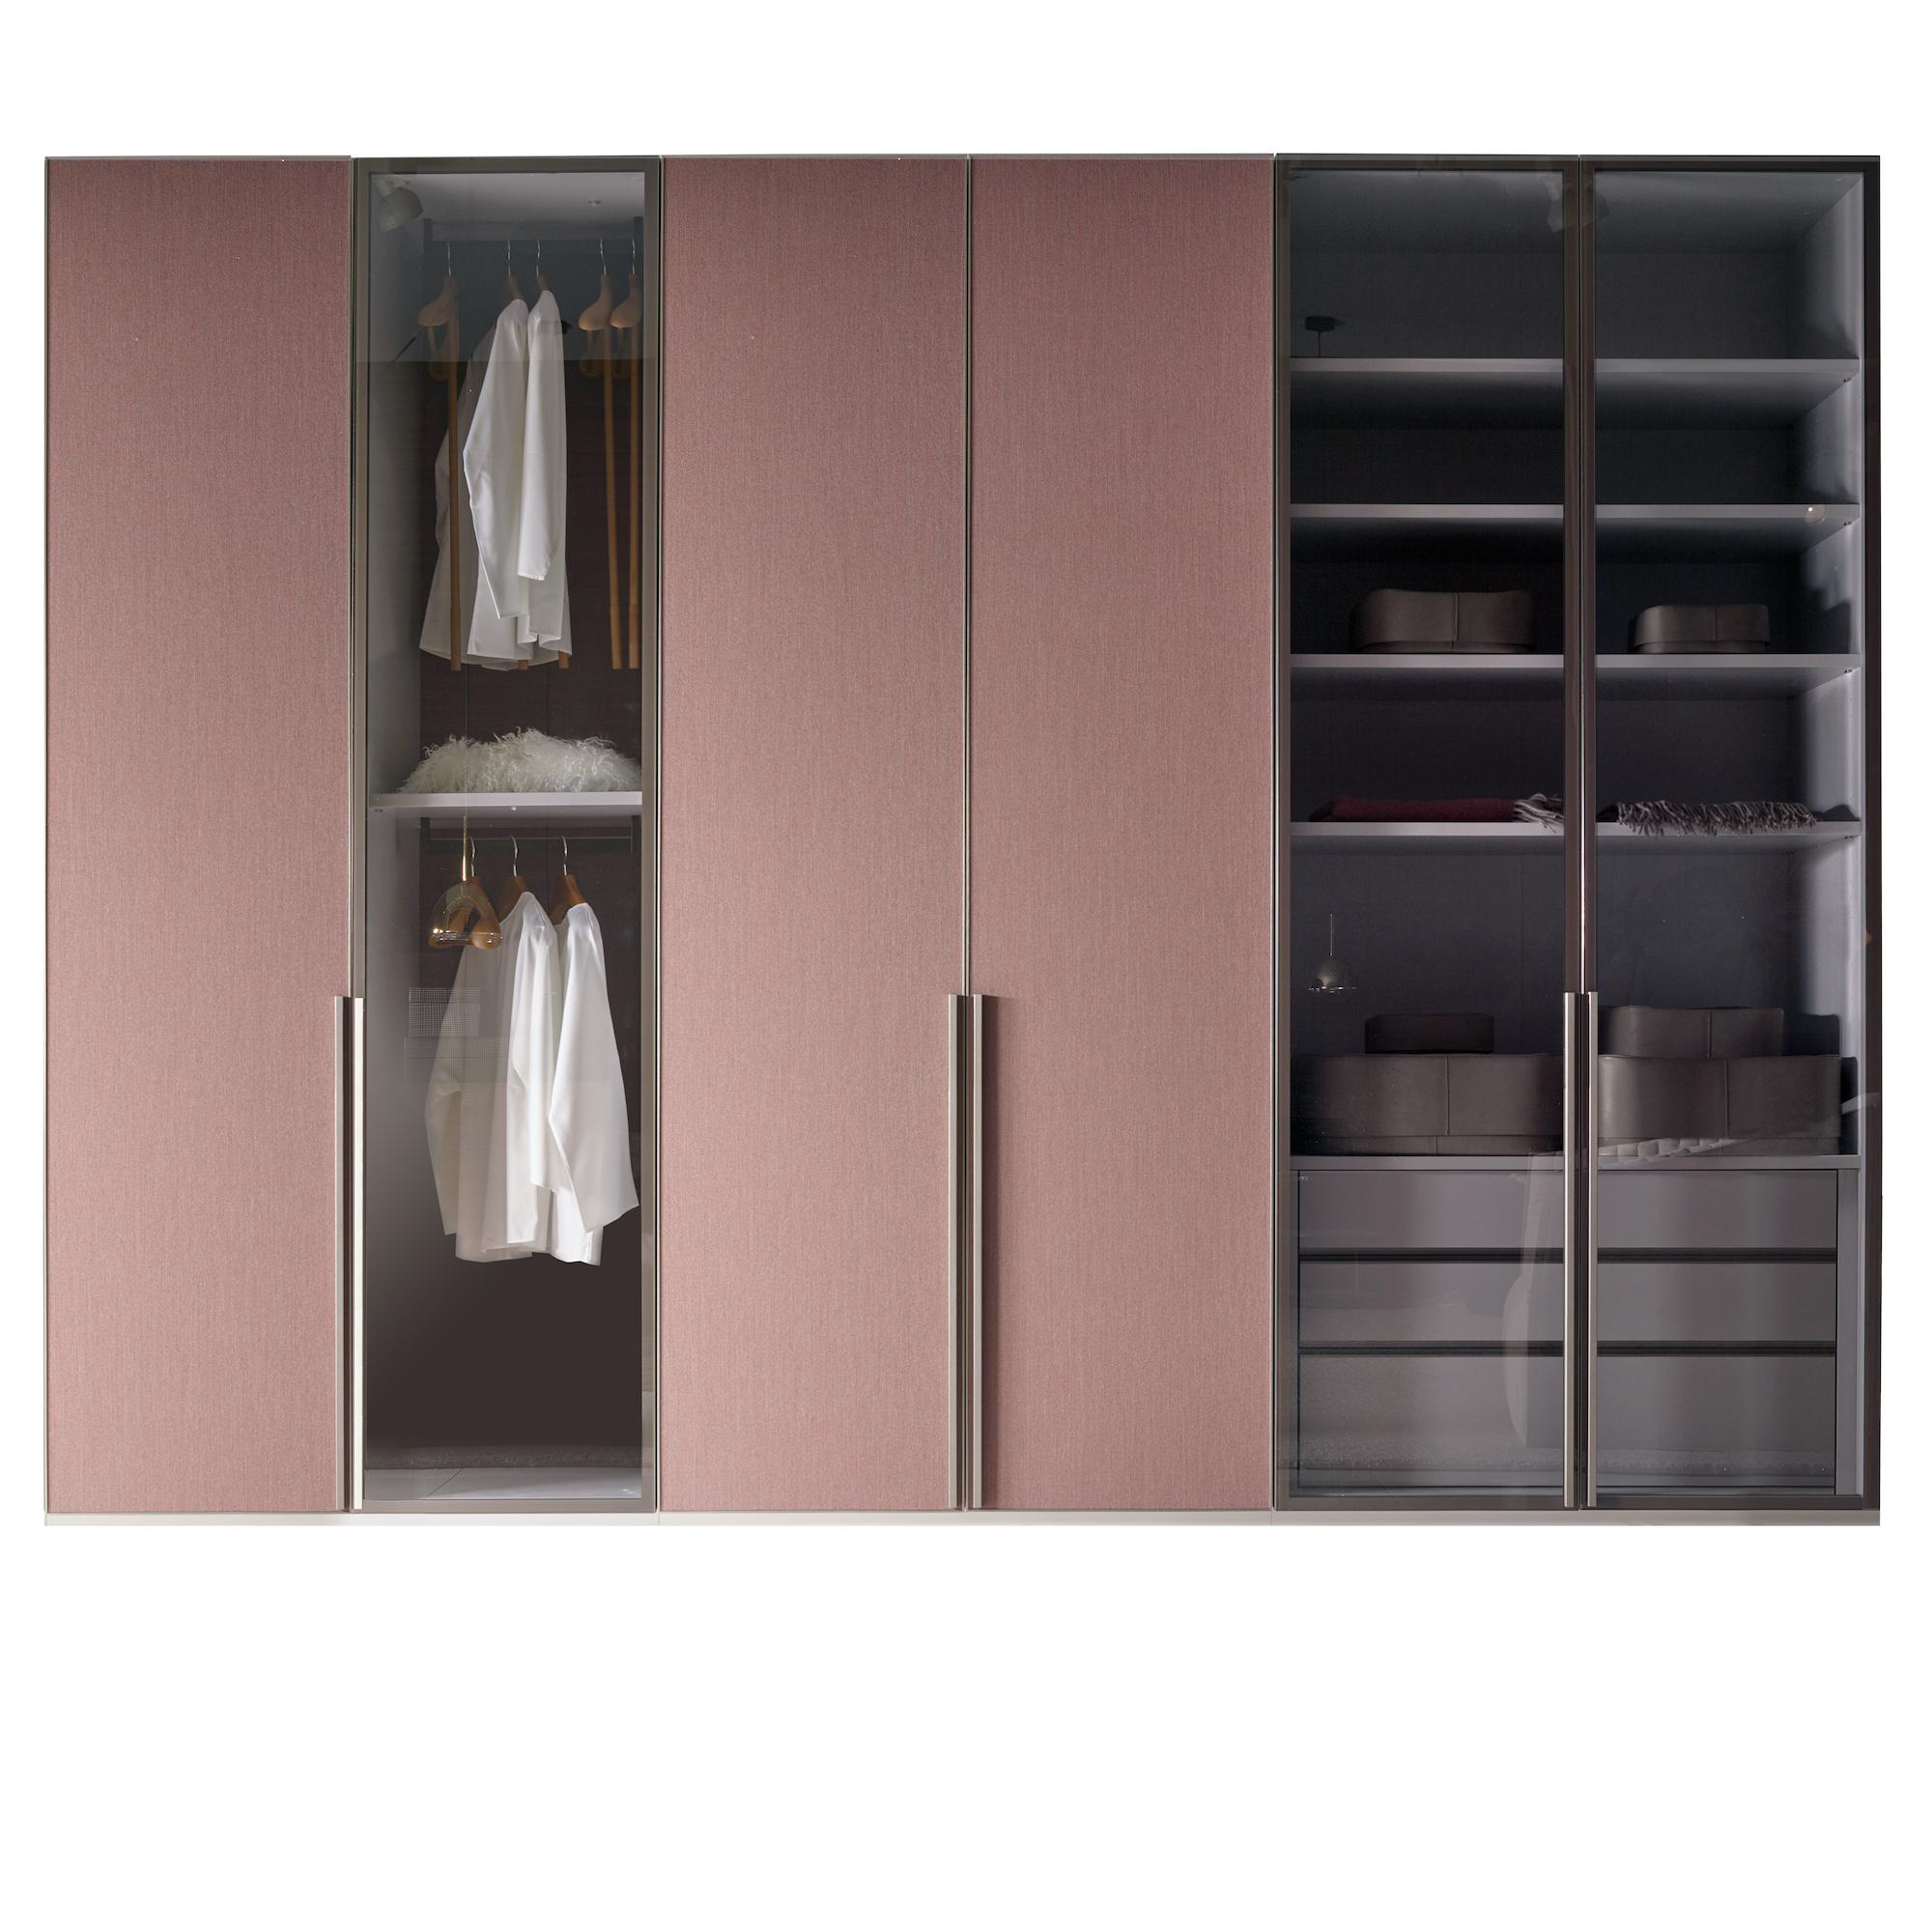 ethan wardrobes from designer ligne roset official site. Black Bedroom Furniture Sets. Home Design Ideas